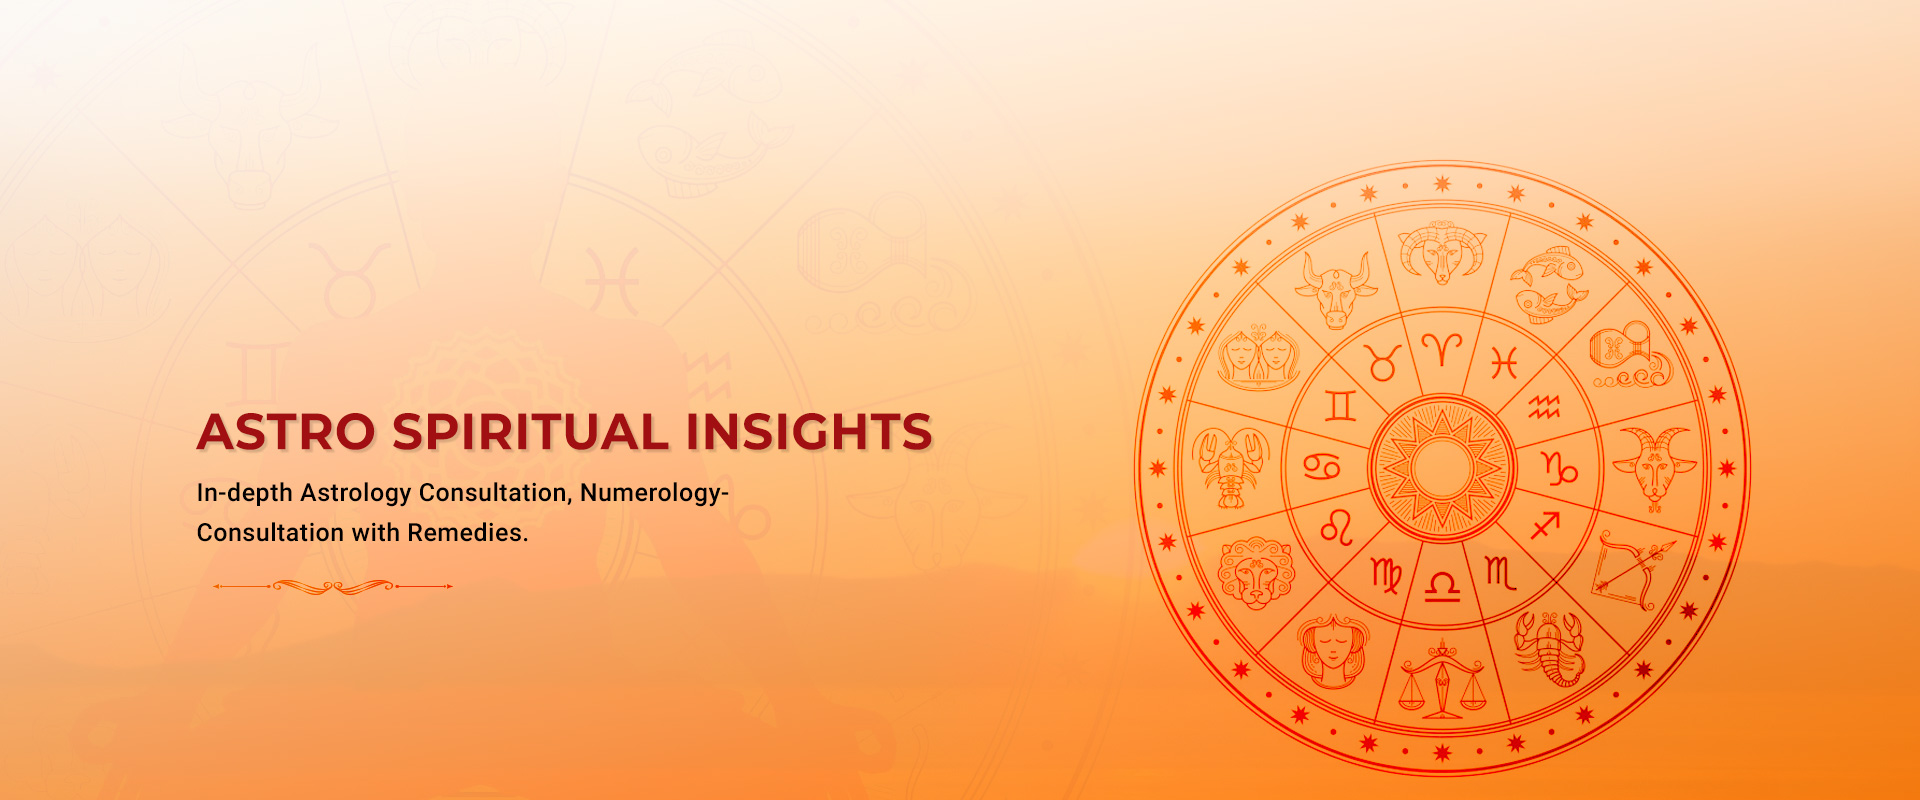 Astro Spiritual Insights, Astrological Remedies for Marriage Problems